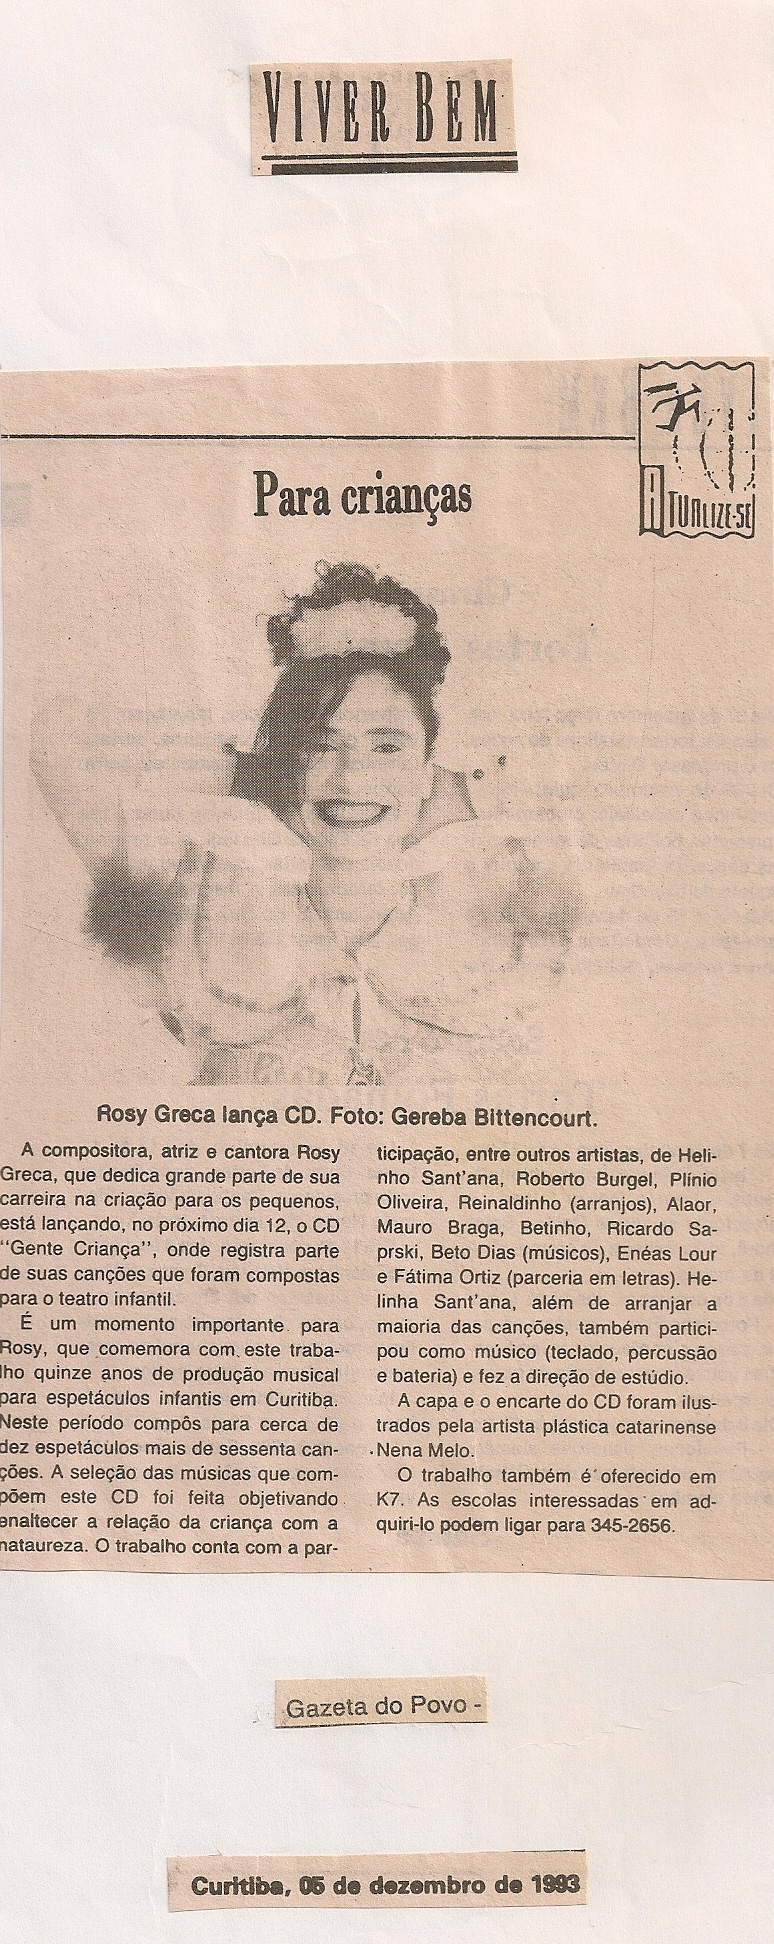 Rosy Greca lança CD, Gazeta do Povo, 1993